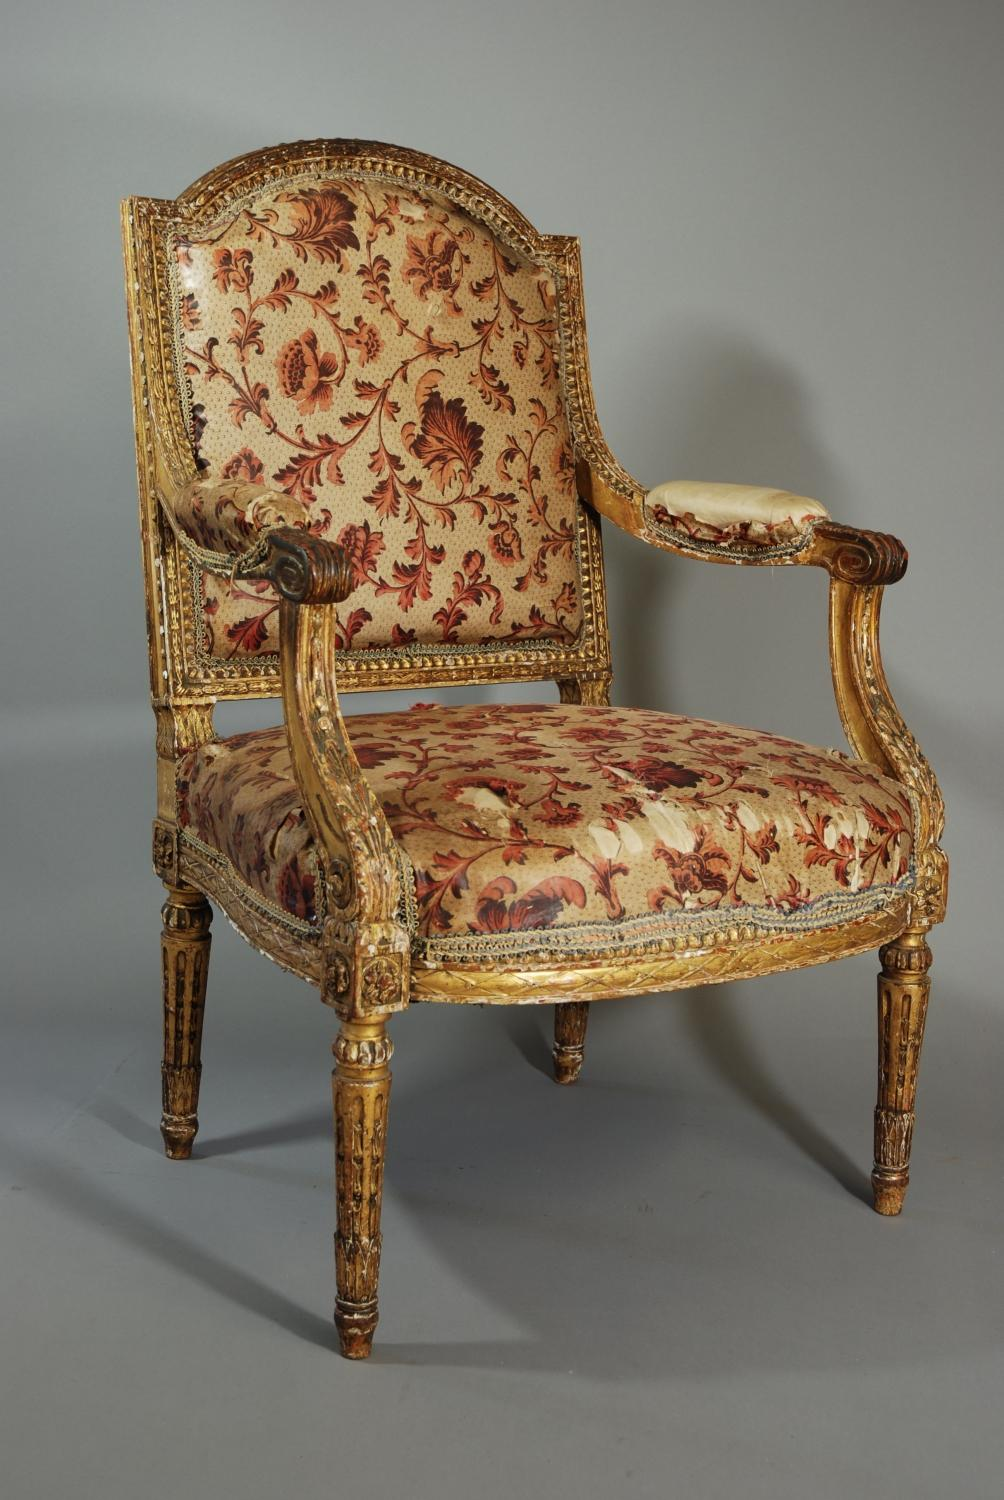 Mid 19th century French fauteuil